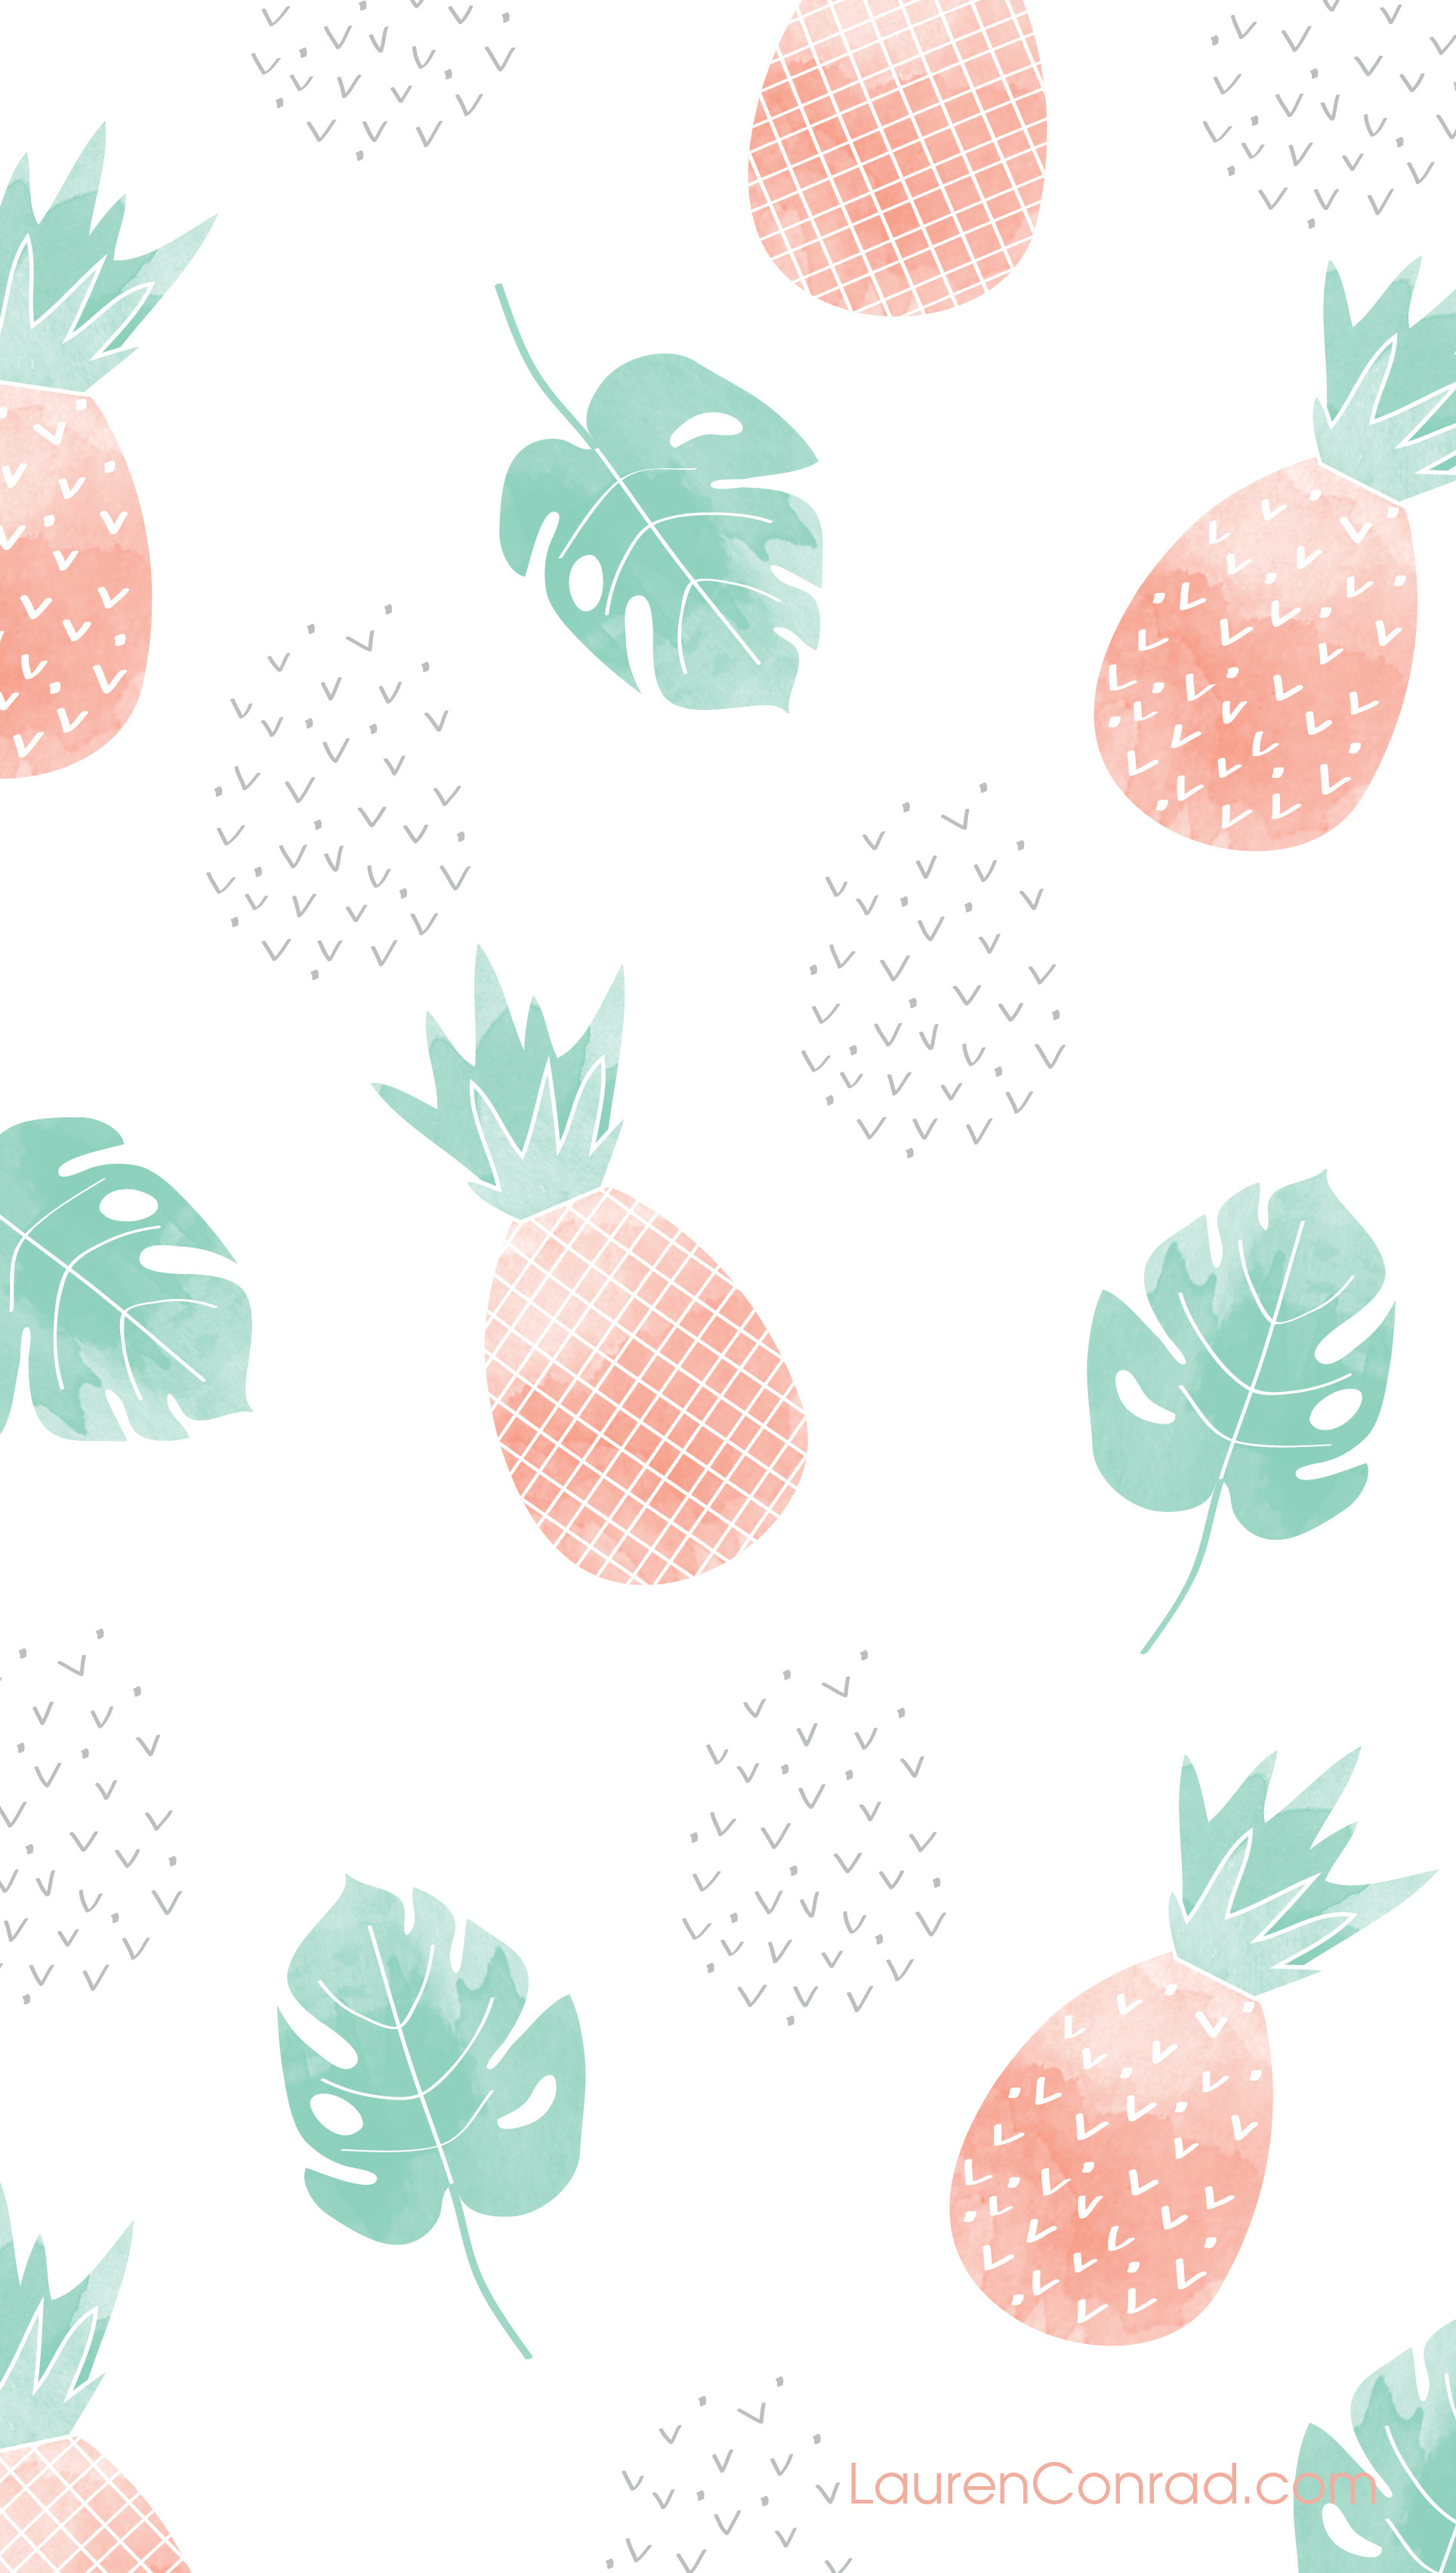 Yellow-Heart-Art-for-LC-Pineapple-Phone-Wallpaper-DOWNLOAD.jpg 1,928×3,407  pixels | iPhone Wallpapers | Pinterest | Wallpaper, Patterns and Prints